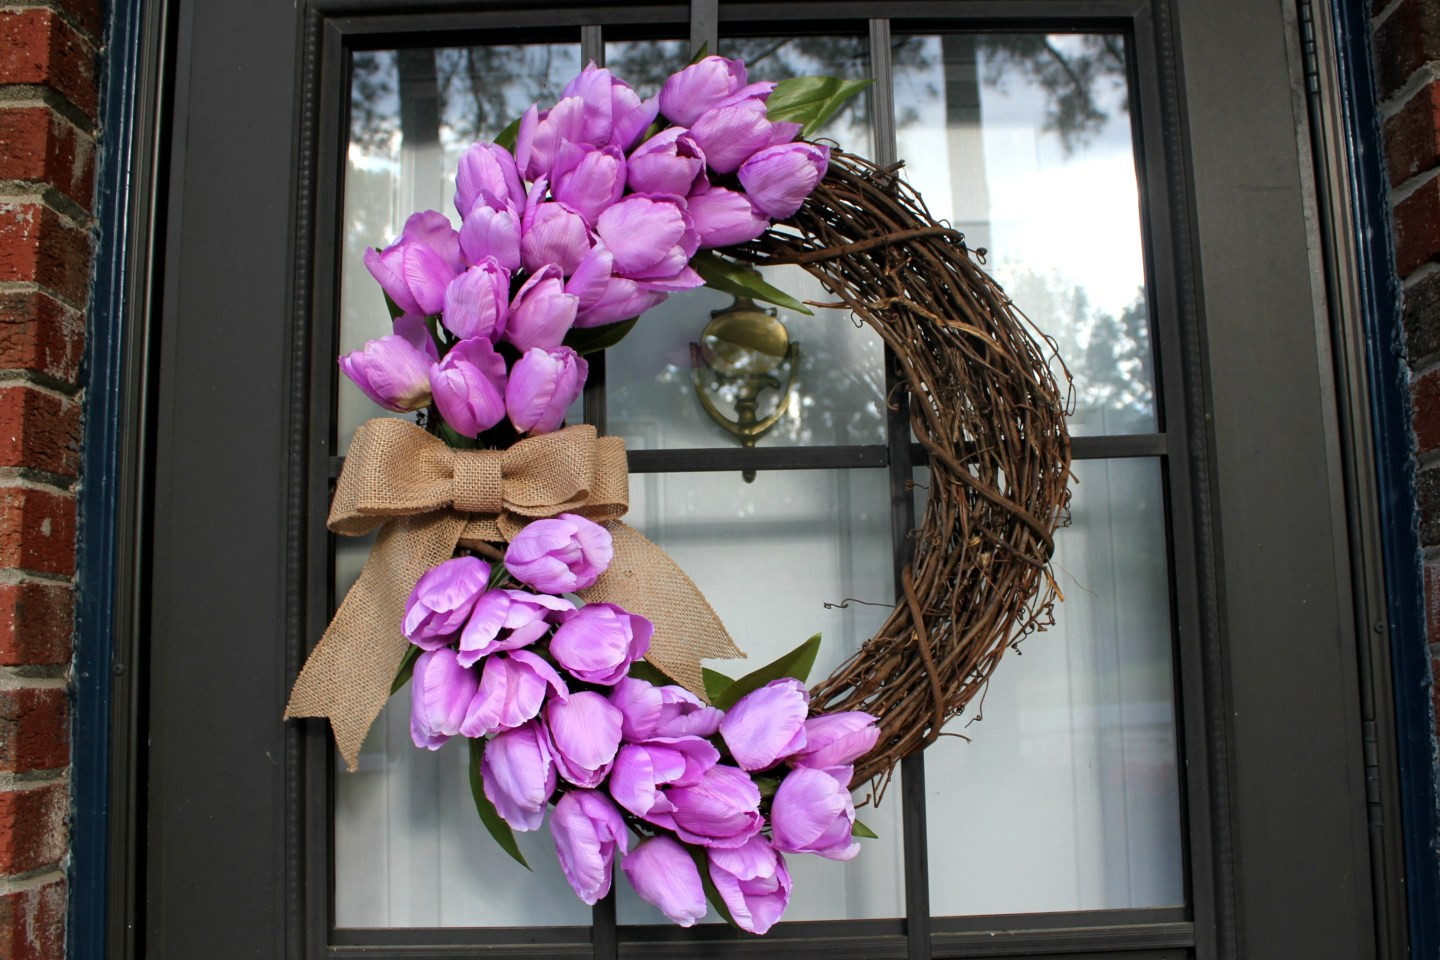 hang your wreath up - you are done